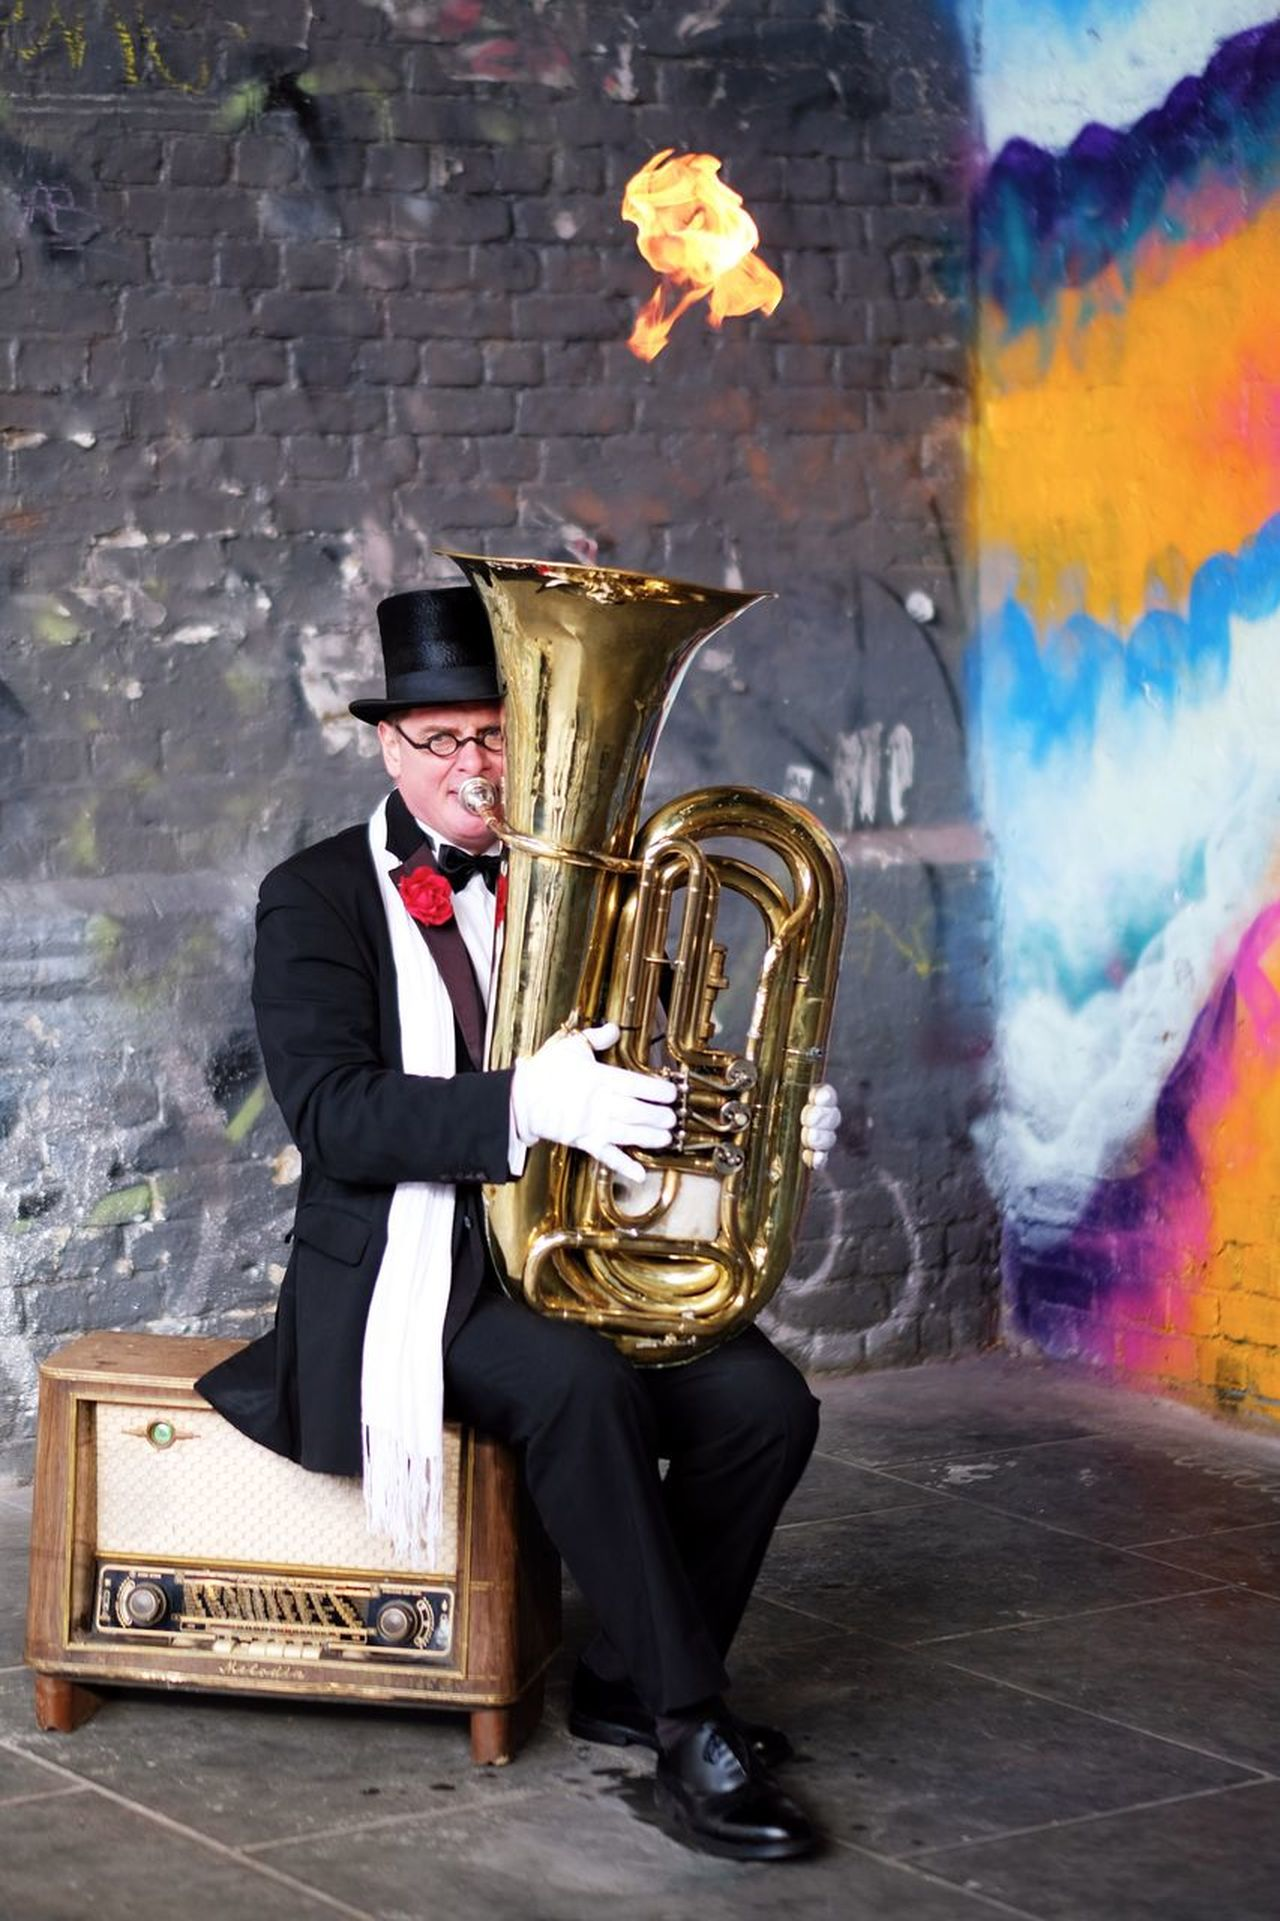 Music Musical Instrument Suit Performance Musician Man Fire Fireworks Playing Art Portrait Entertainment Old-fashioned Gentleman  People Tuba One Person Street Graffiti Street Photography EyeEm Best Shots Check This Out Flame in London , United Kingdom